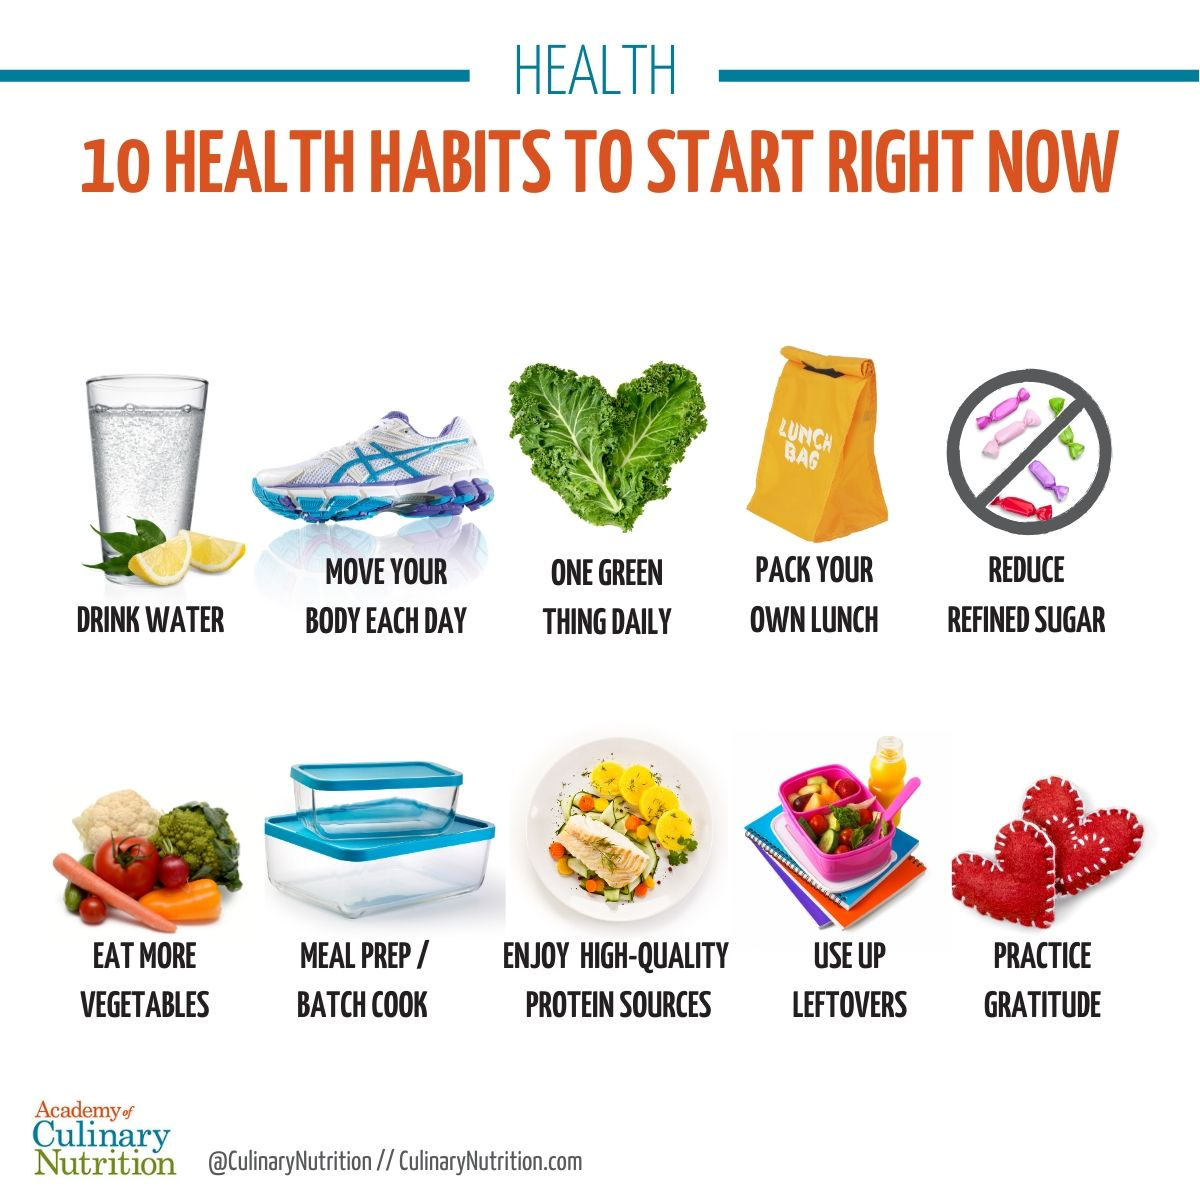 10 Health Habits To Start Right Now